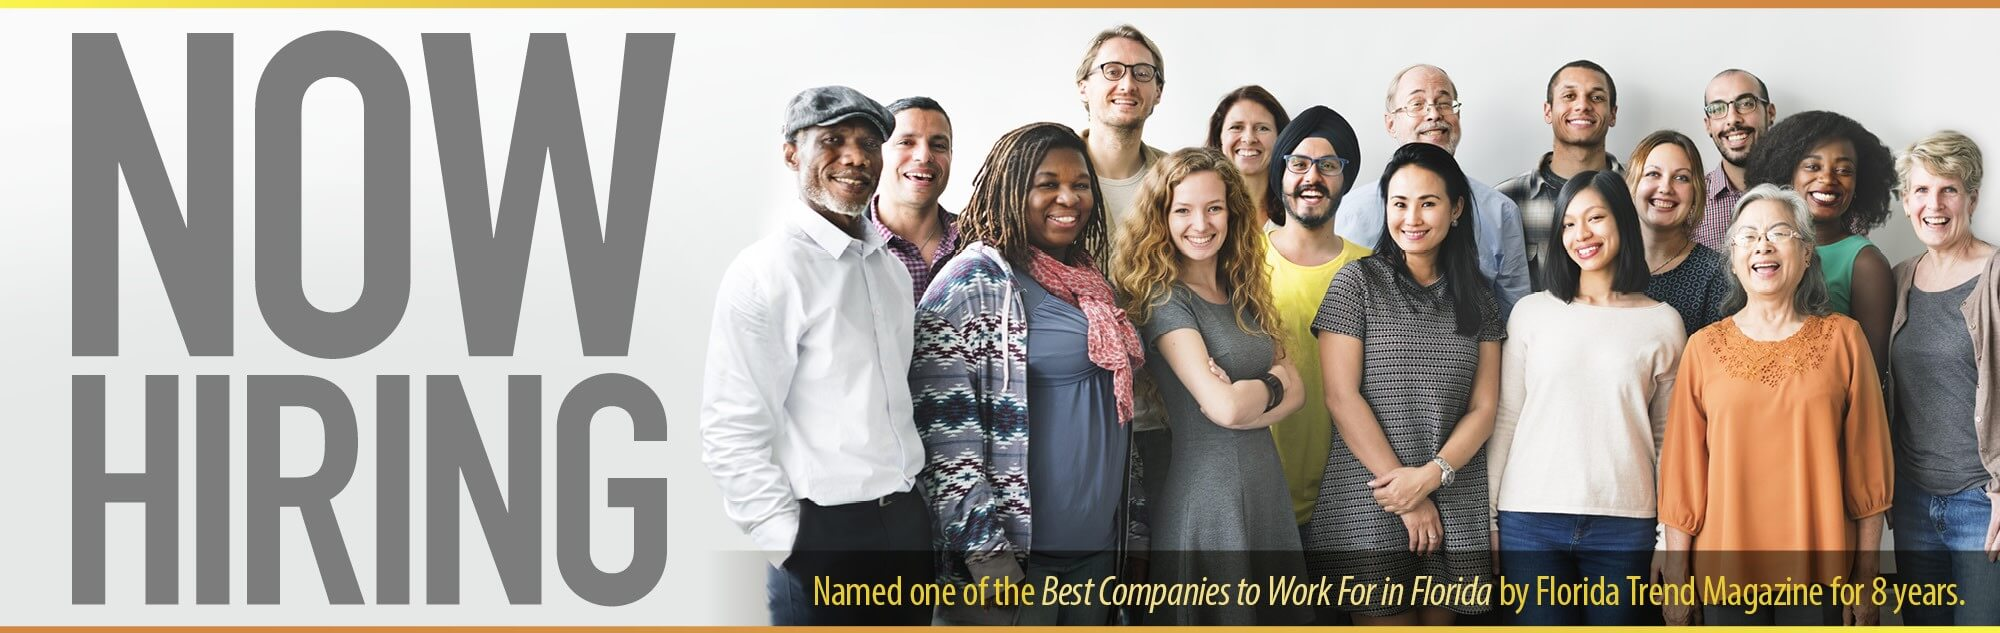 Named one of the Best Companies to Work For in Florida by Florida Trend Magazine for 8 years.